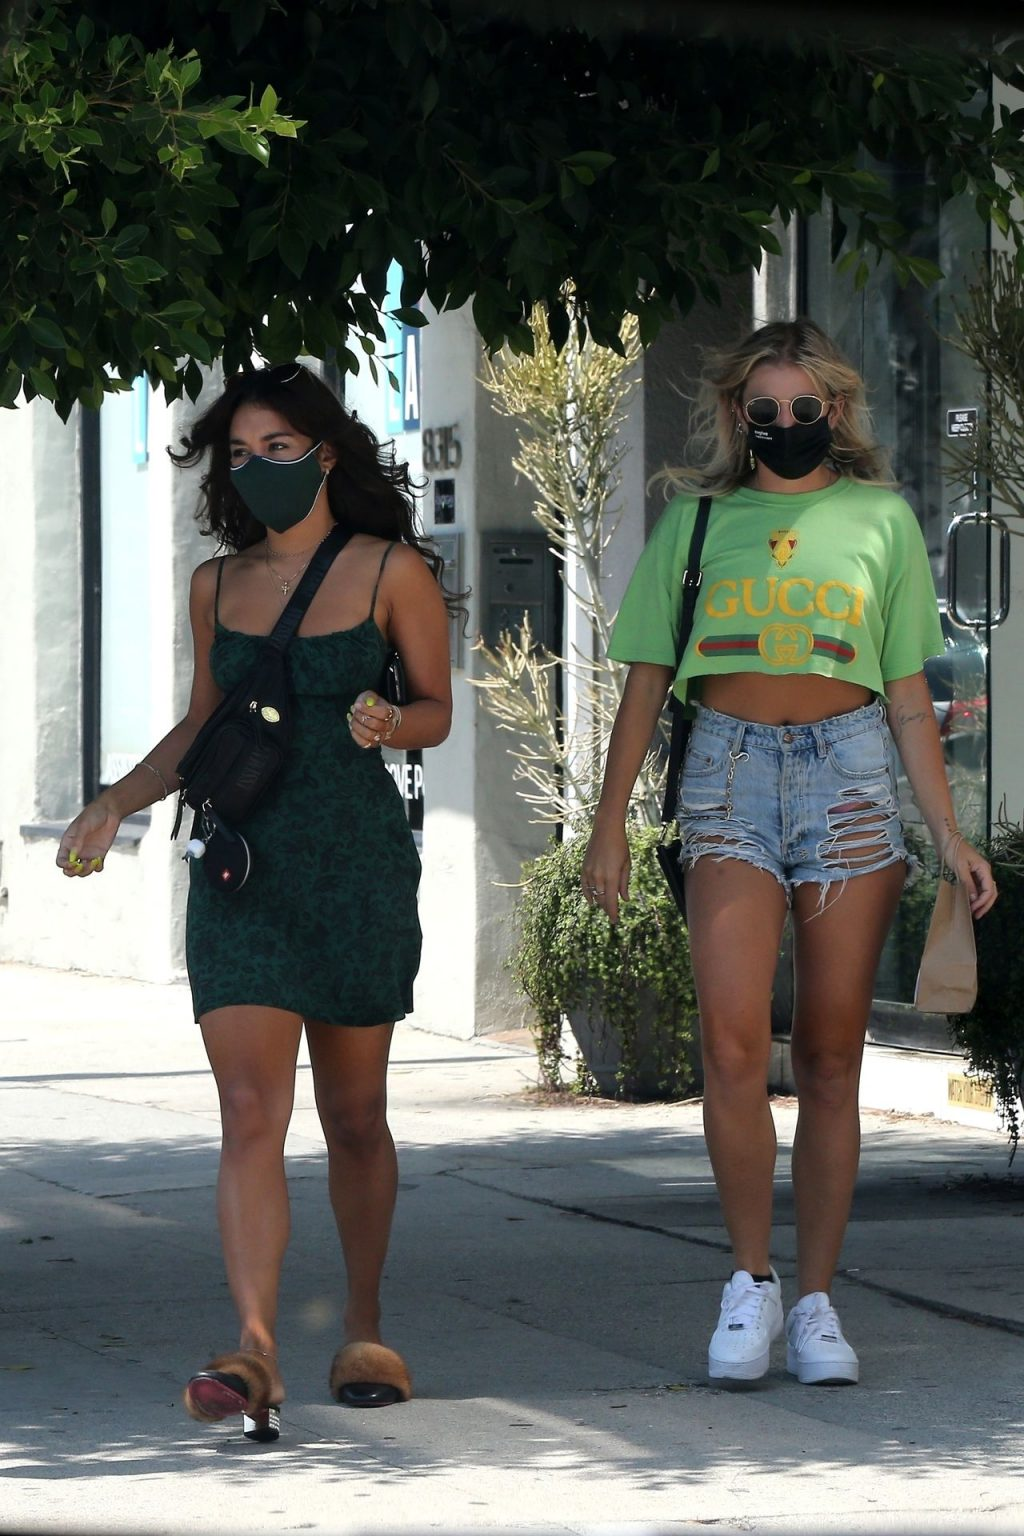 Vanessa Hudgens & GG Magree Make Their Last Shopping Trip at The Green Easy (66 Photos)